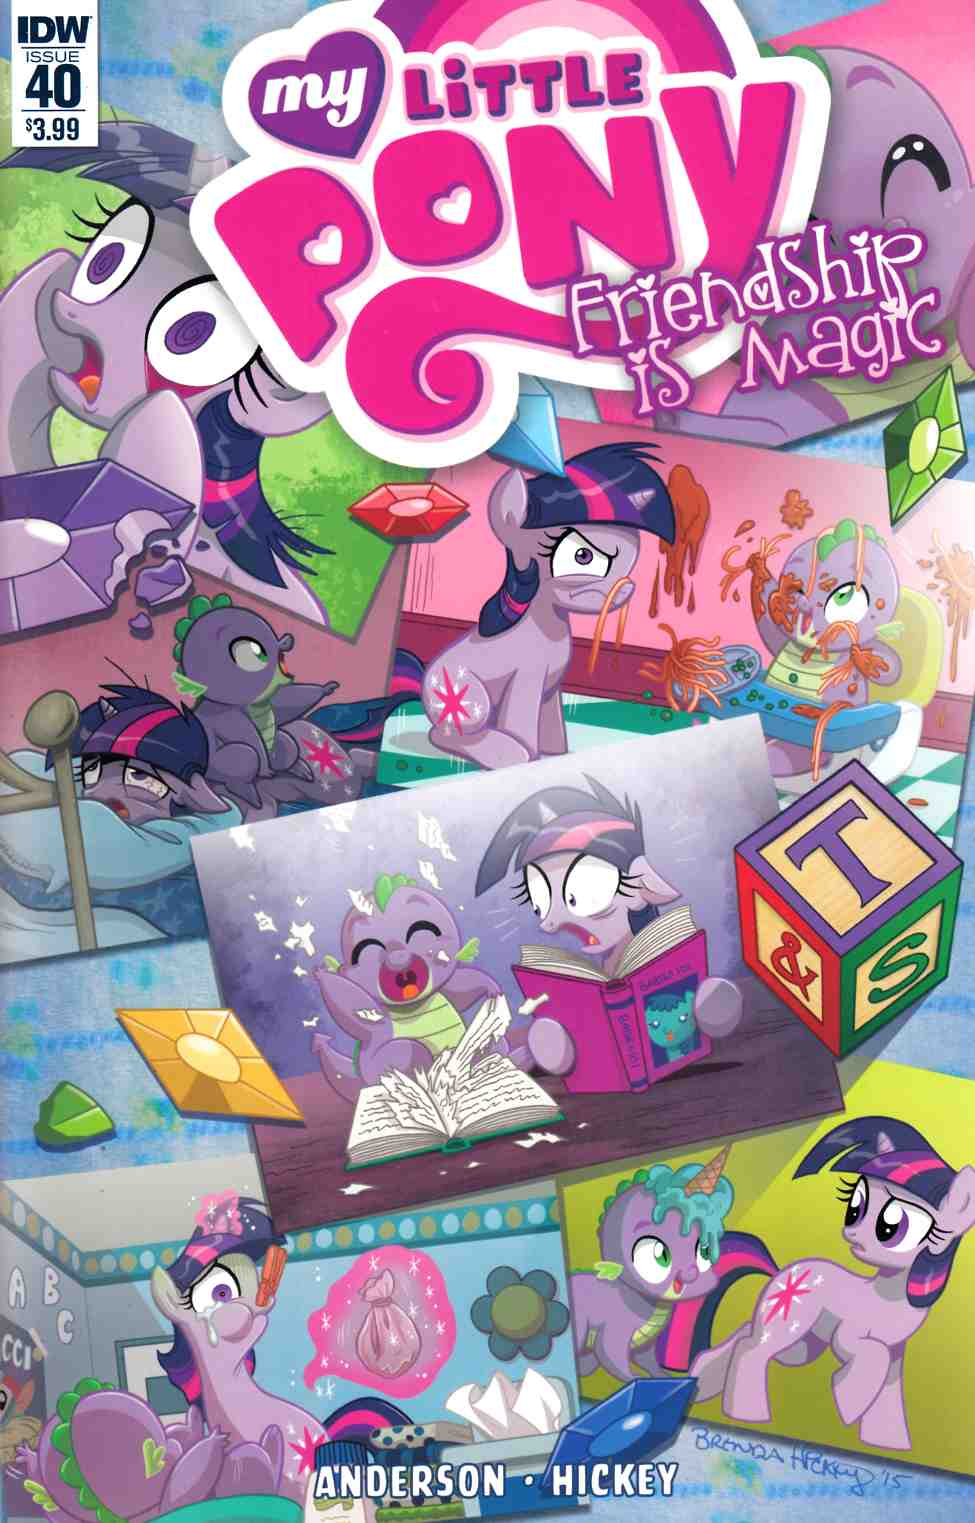 My Little Pony Friendship Is Magic #40 [IDW Comic] THUMBNAIL